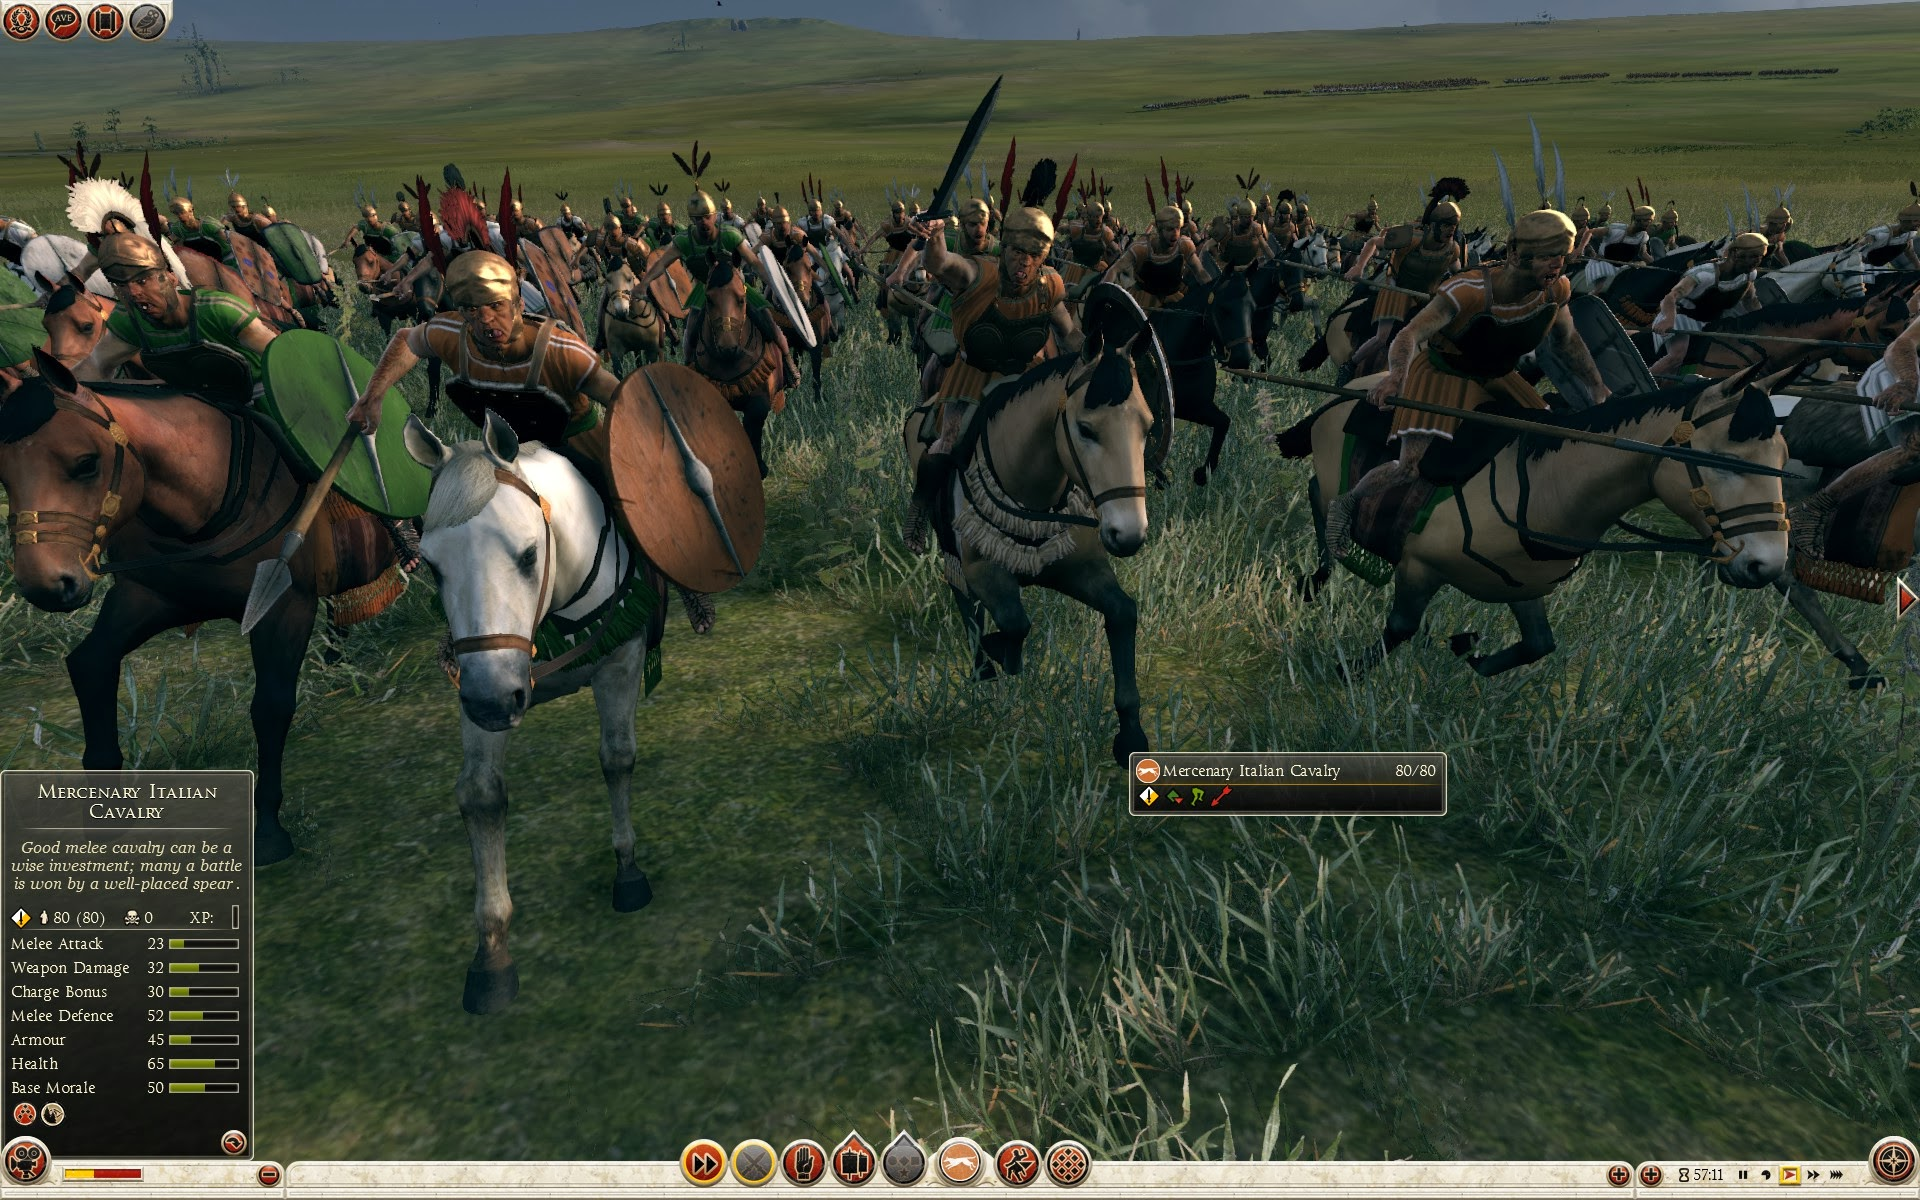 Mercenary Italian Cavalry